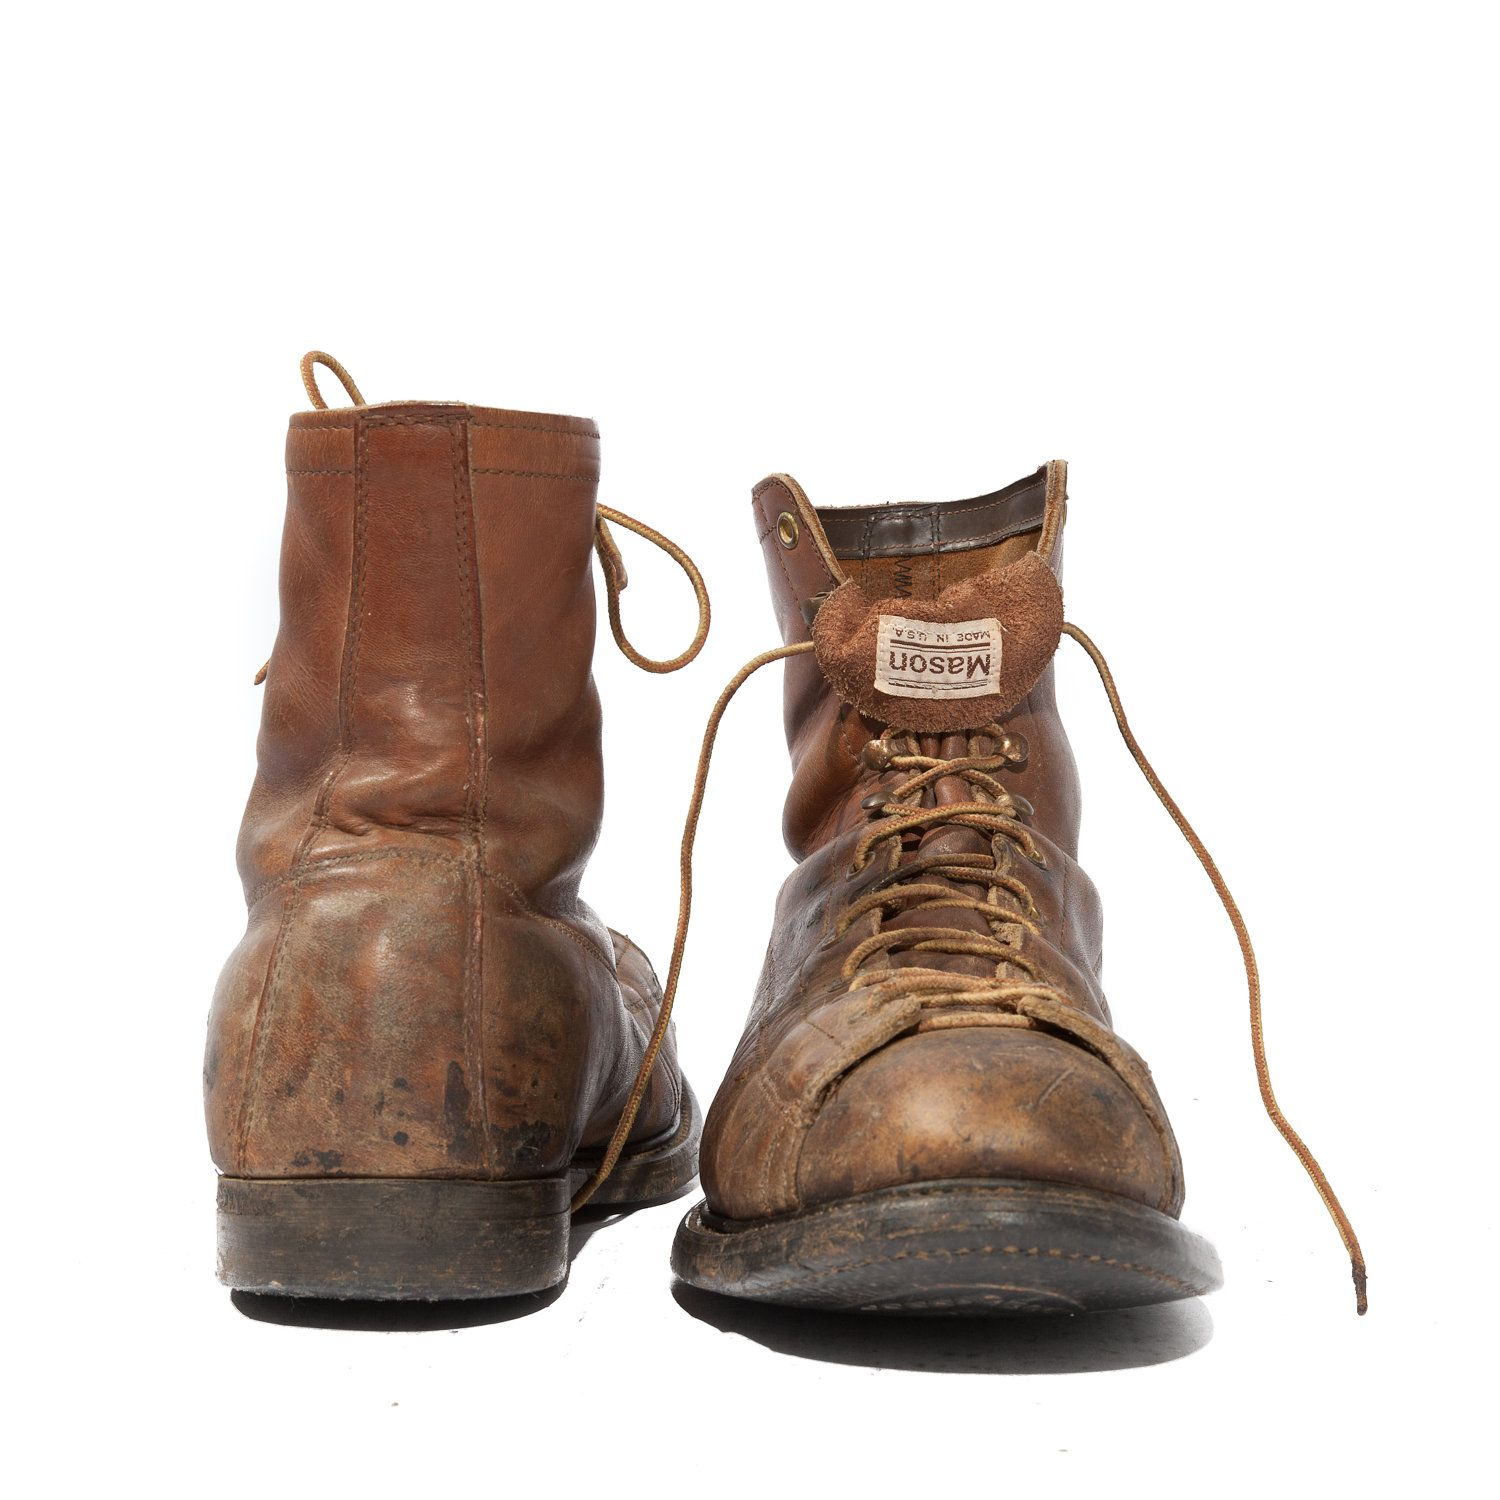 Vintage Mason Miner Boots Distressed Lace Up Steel Toe Work Gear for Men's  Size 9 EE